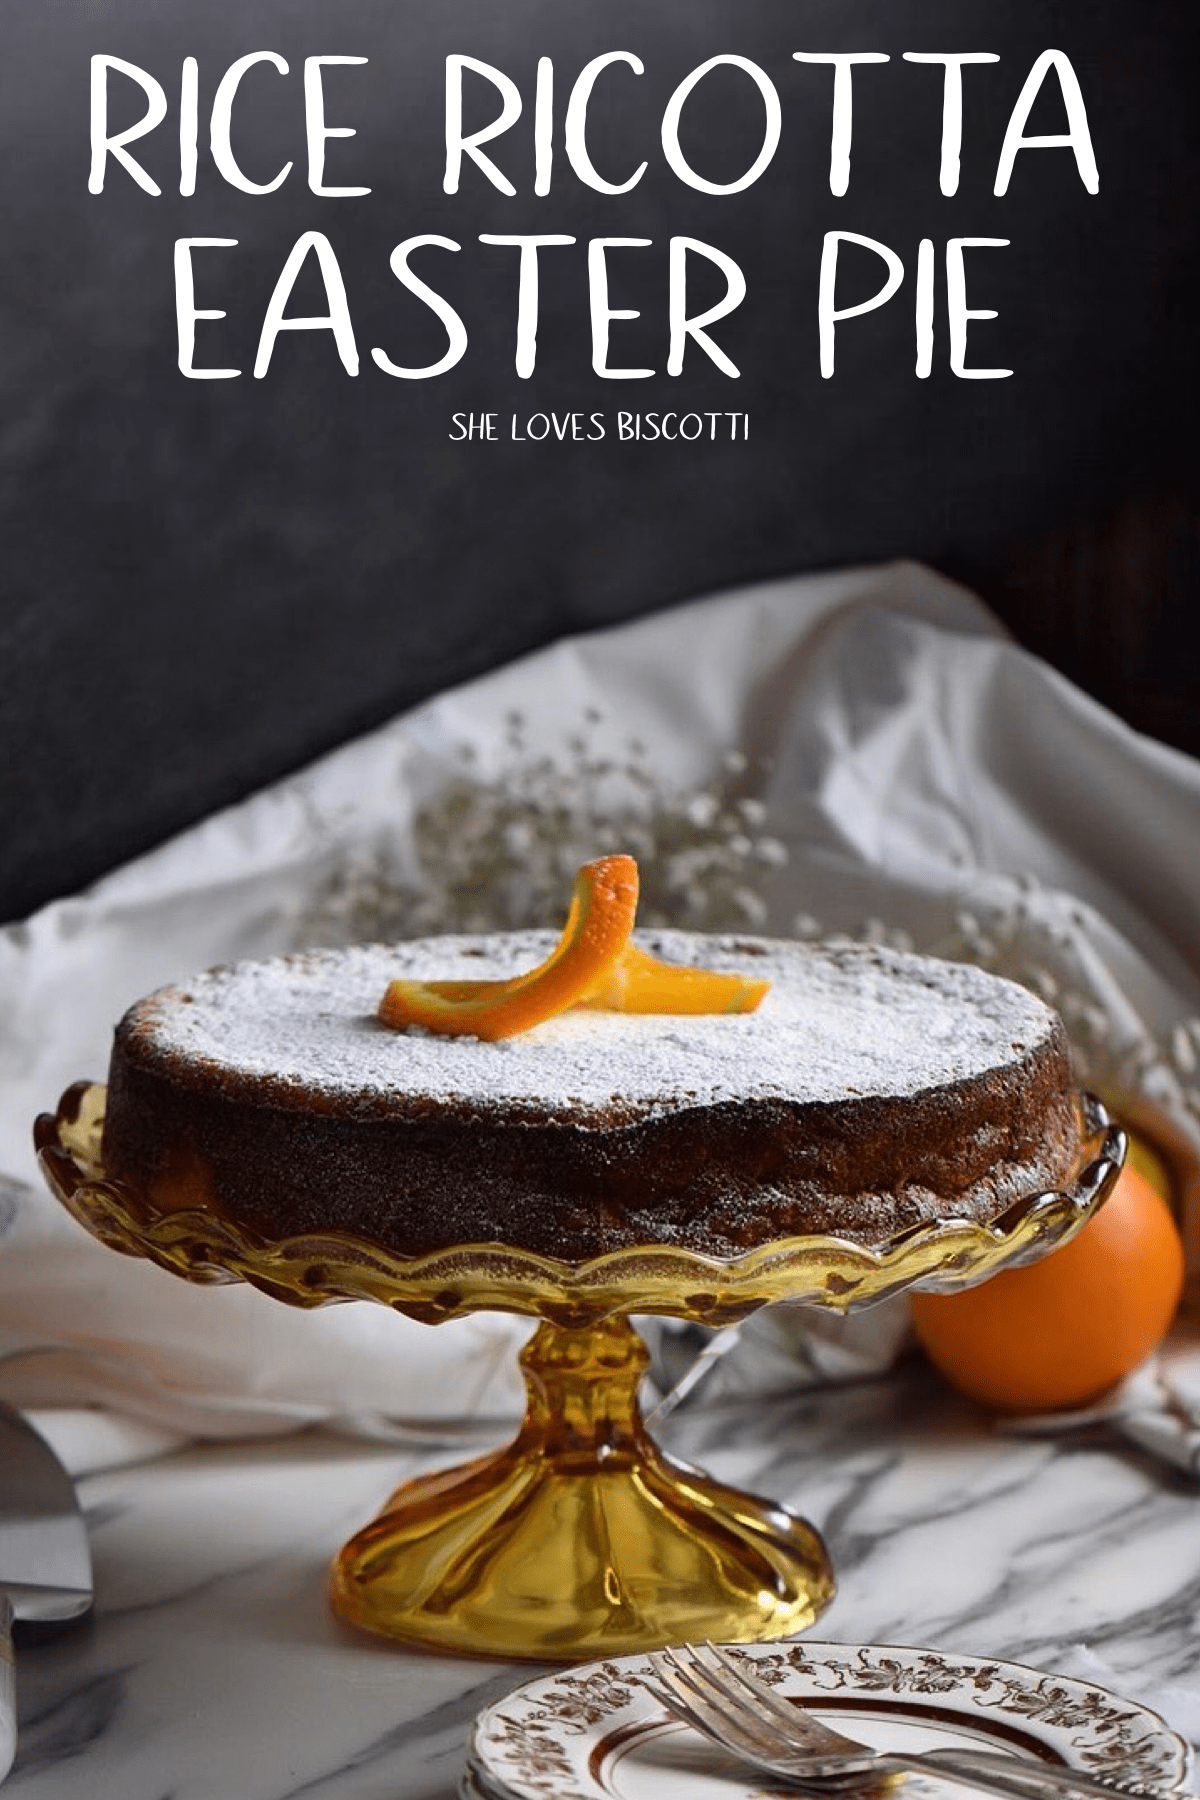 Rice ricotta Easter pie set on a high cake stand.